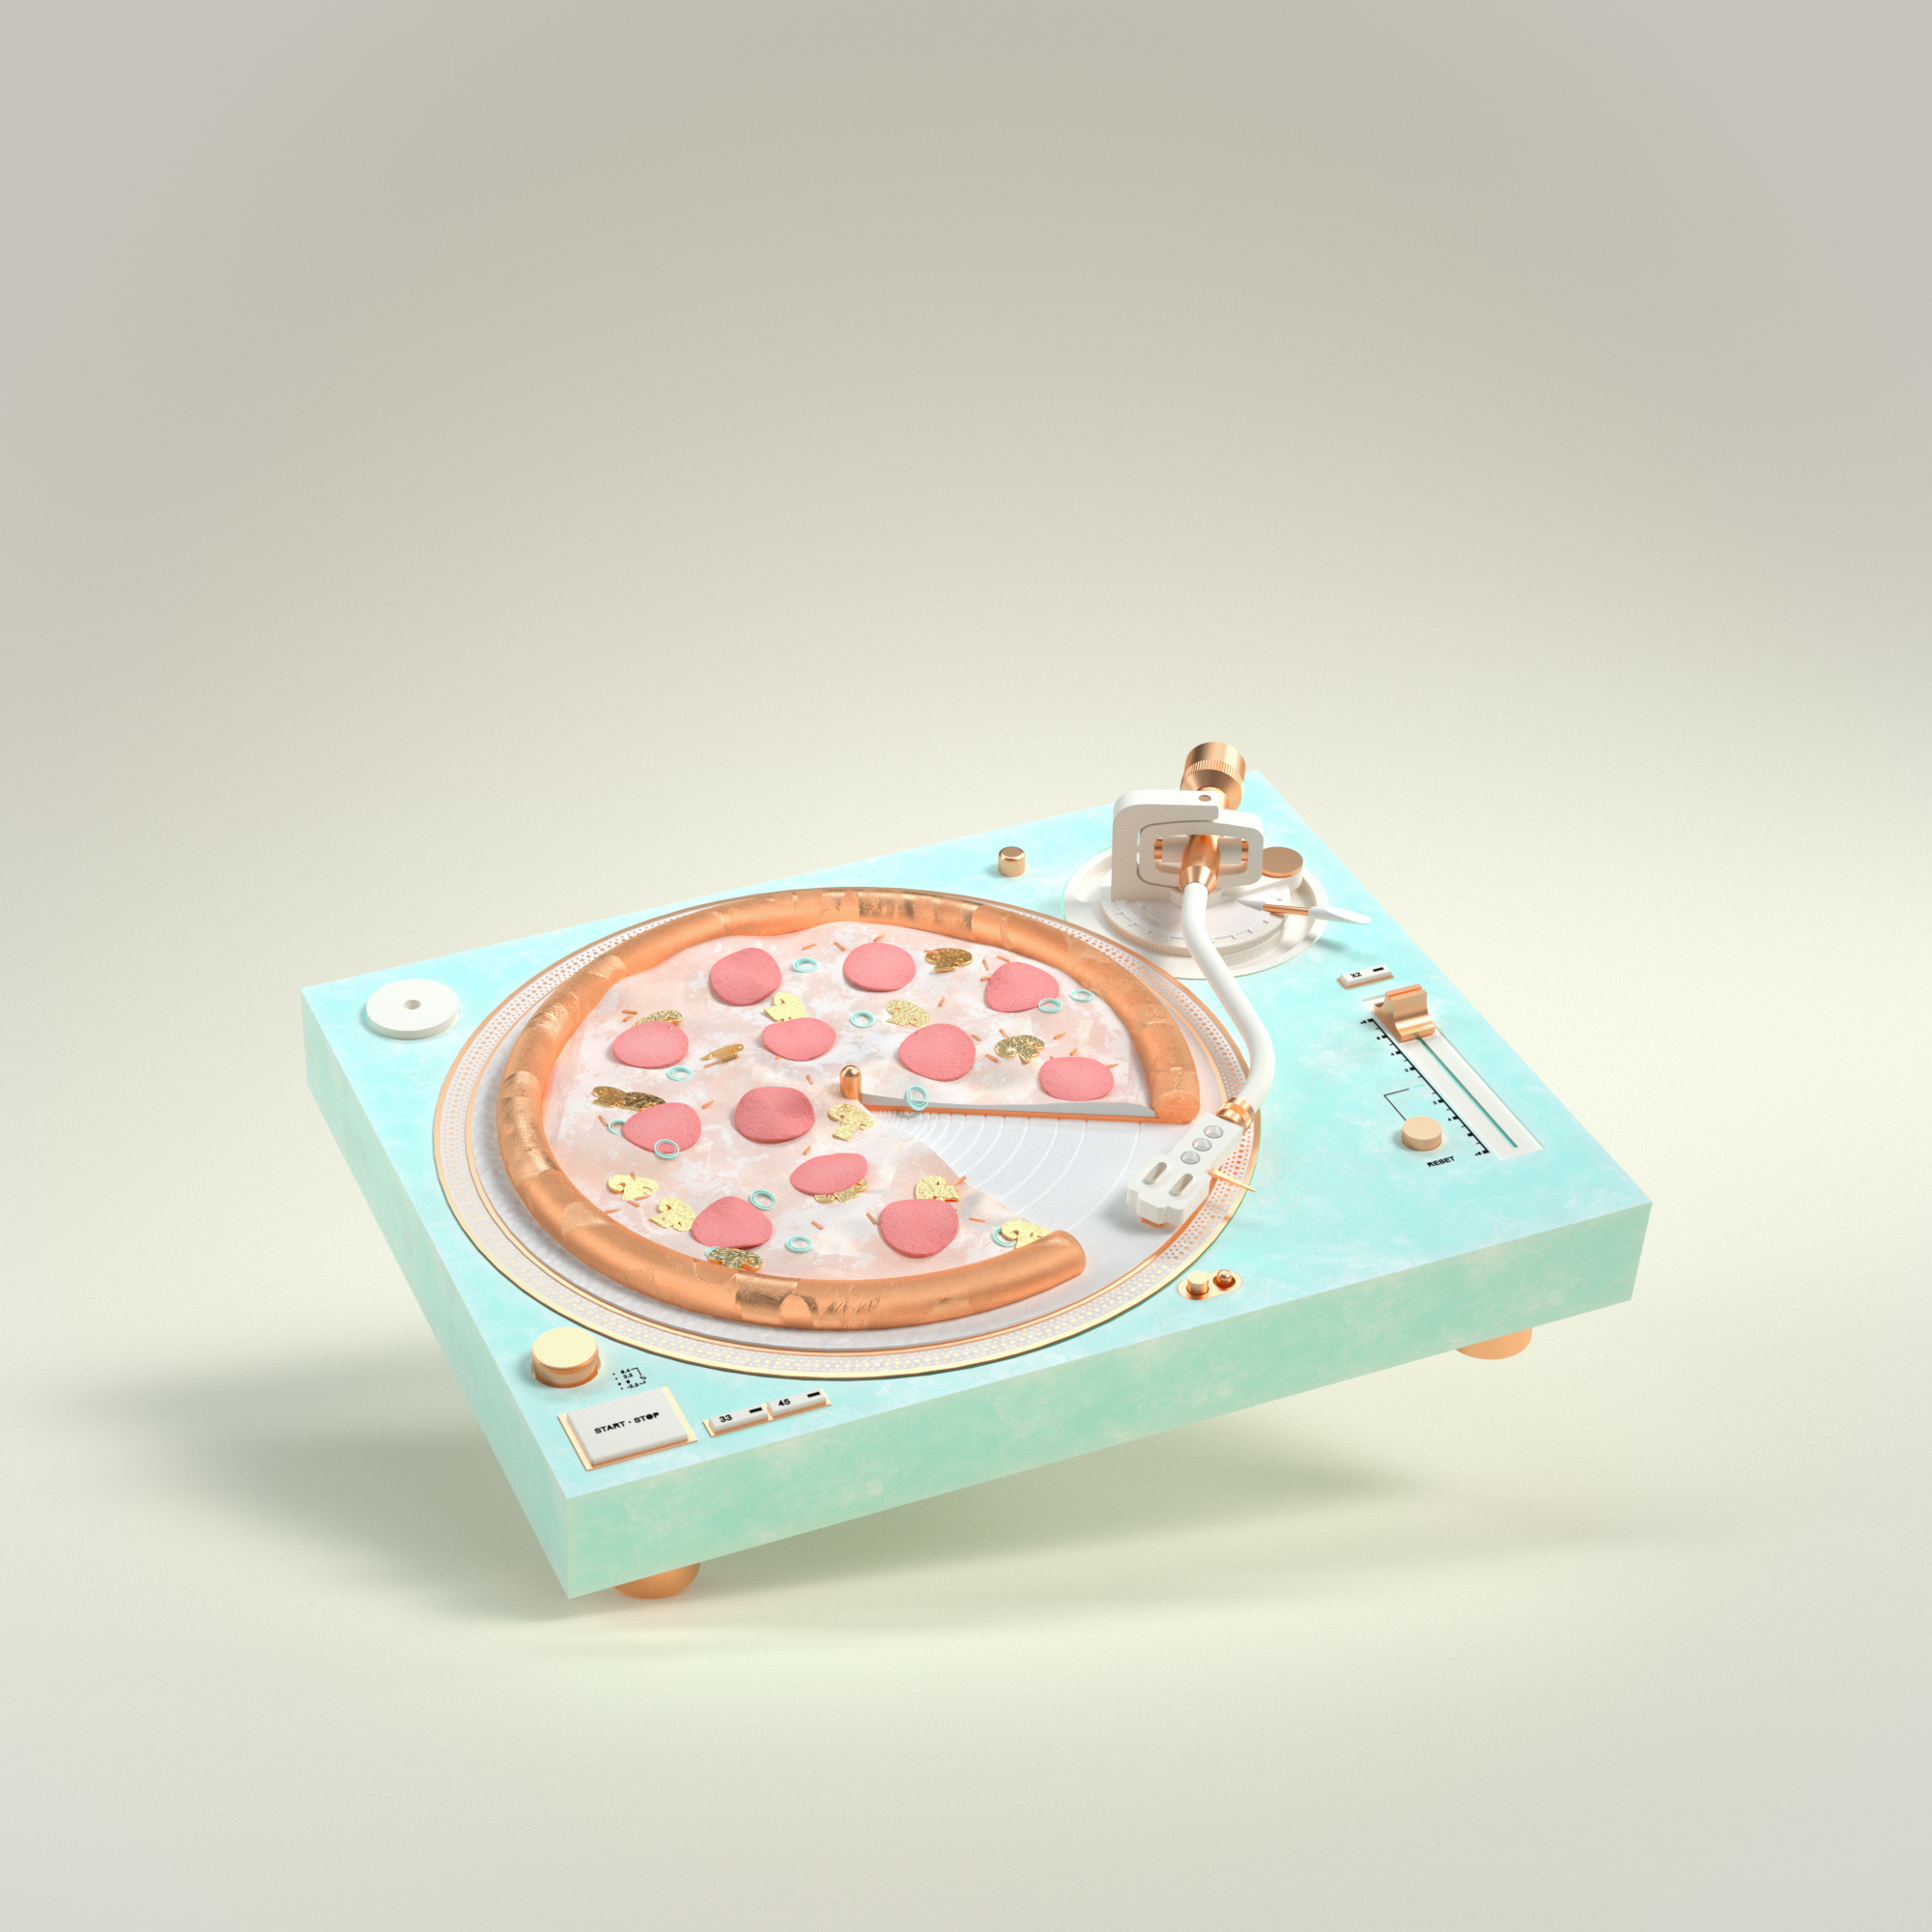 Technics-Pizza_v7.jpg